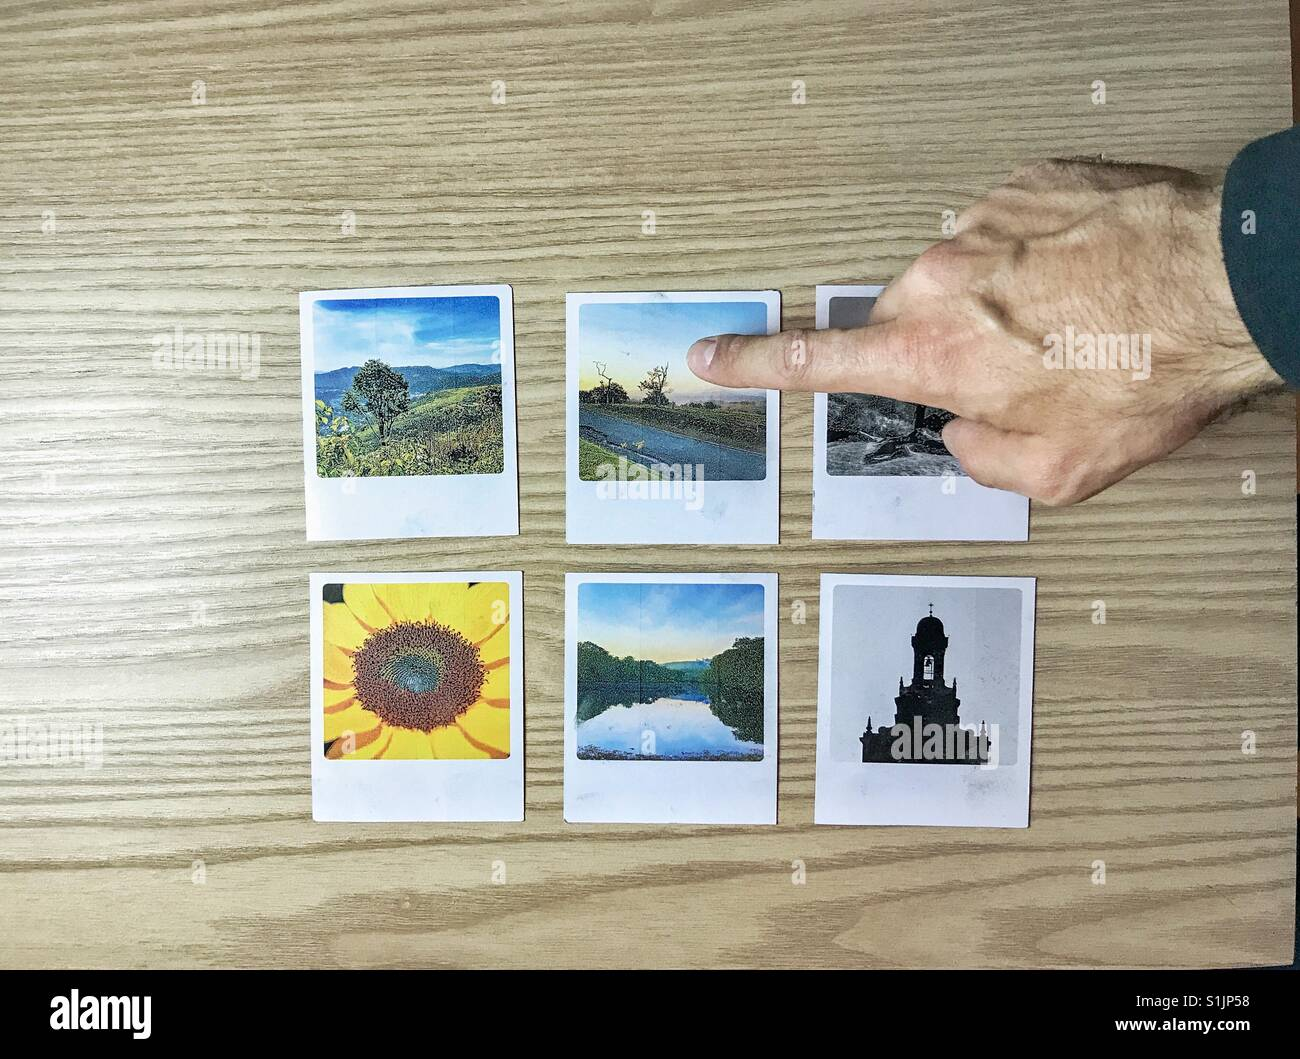 Man's hand choosing a picture among 6 options over a wood tabletop - Stock Image